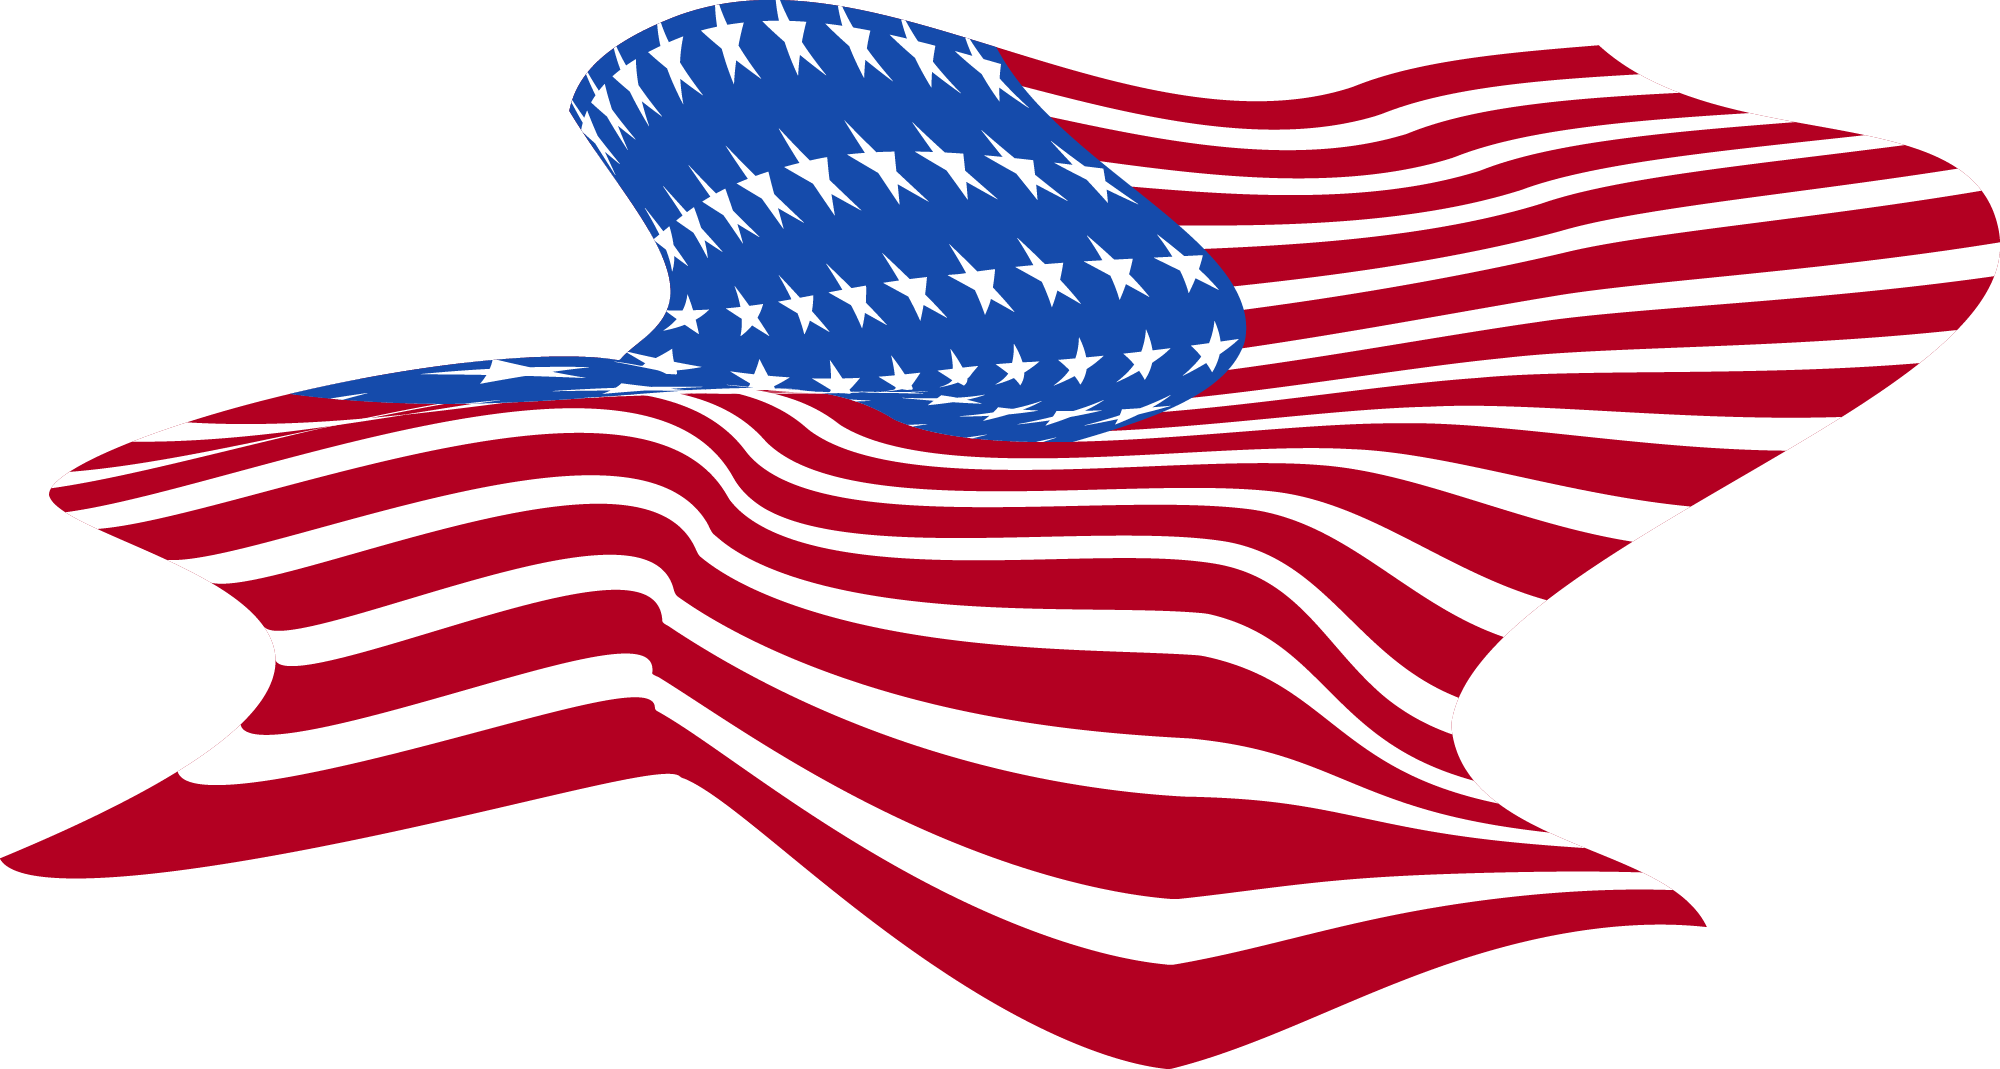 Wavy-American-Flag-Abstract-PNG